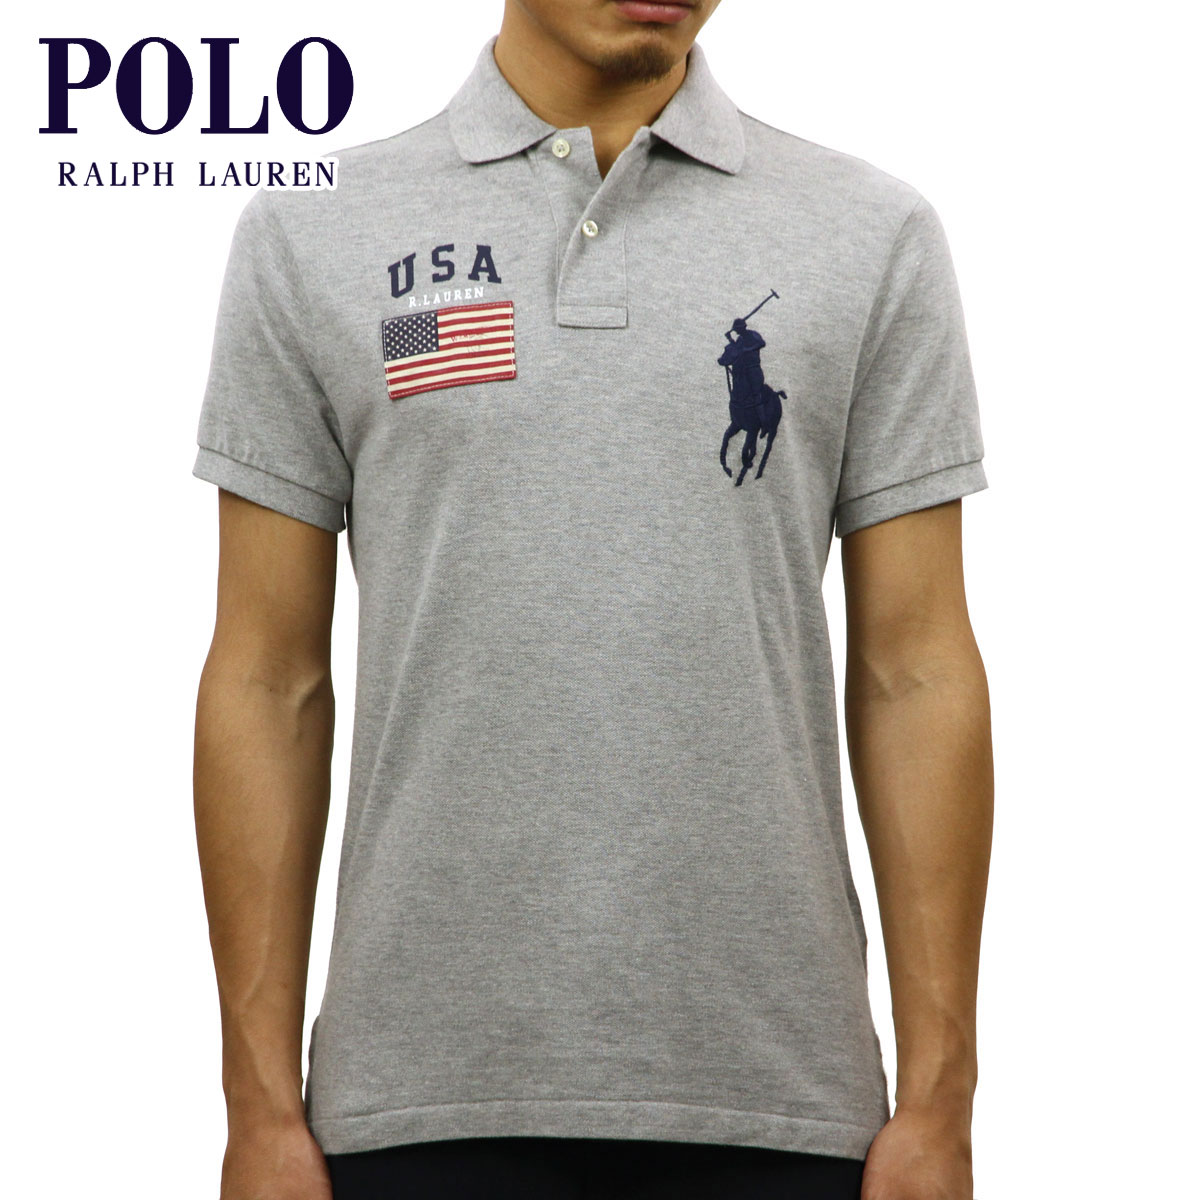 21922f29d Polo Ralph Lauren POLO RALPH LAUREN regular article men short sleeves polo  shirt CUSTOM-FIT ...